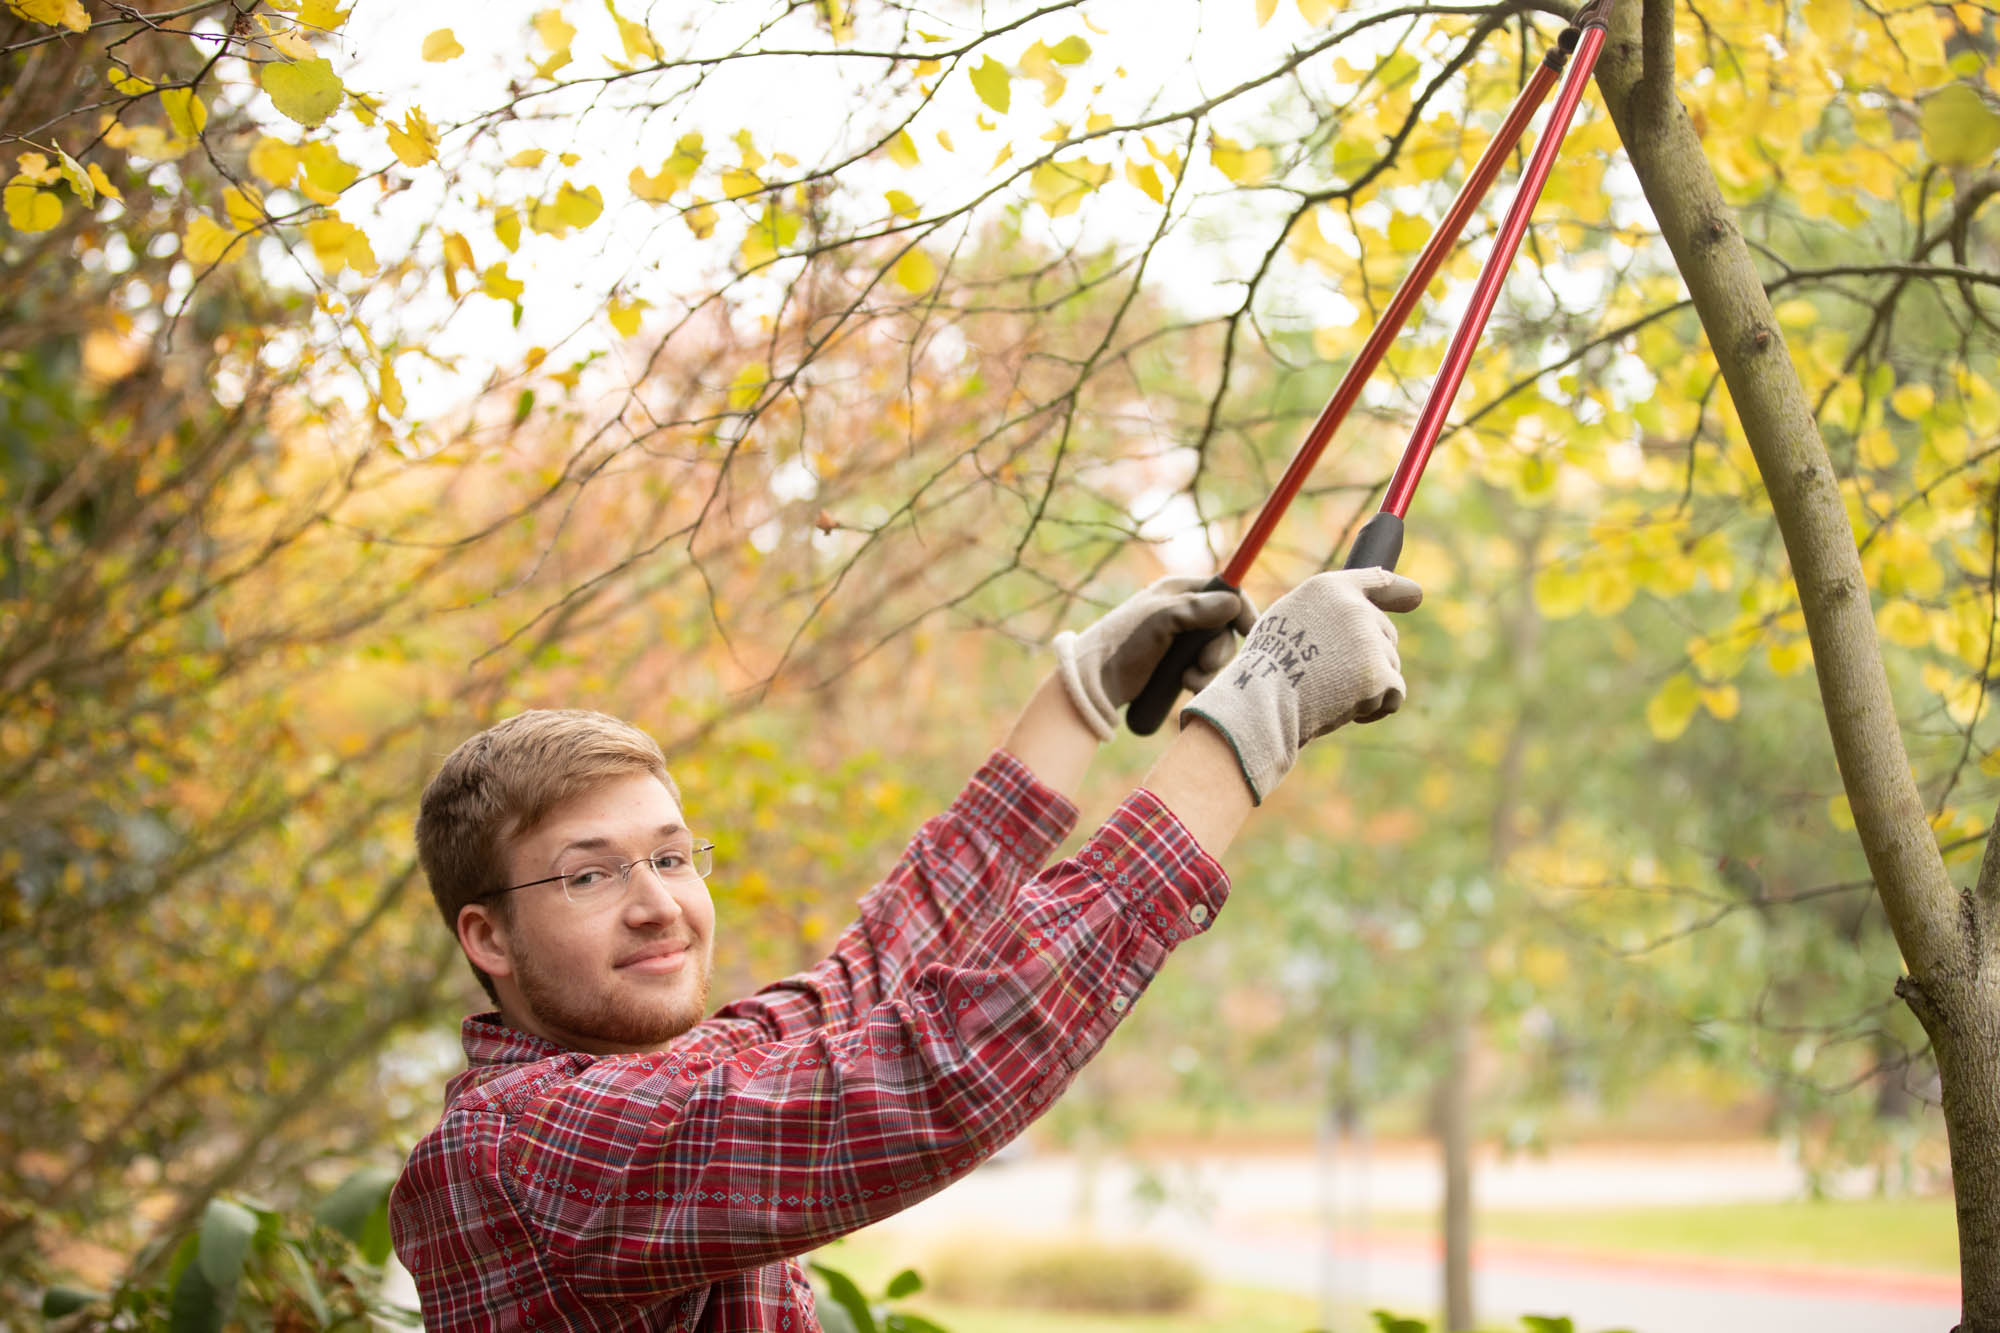 A student clipping tree branches